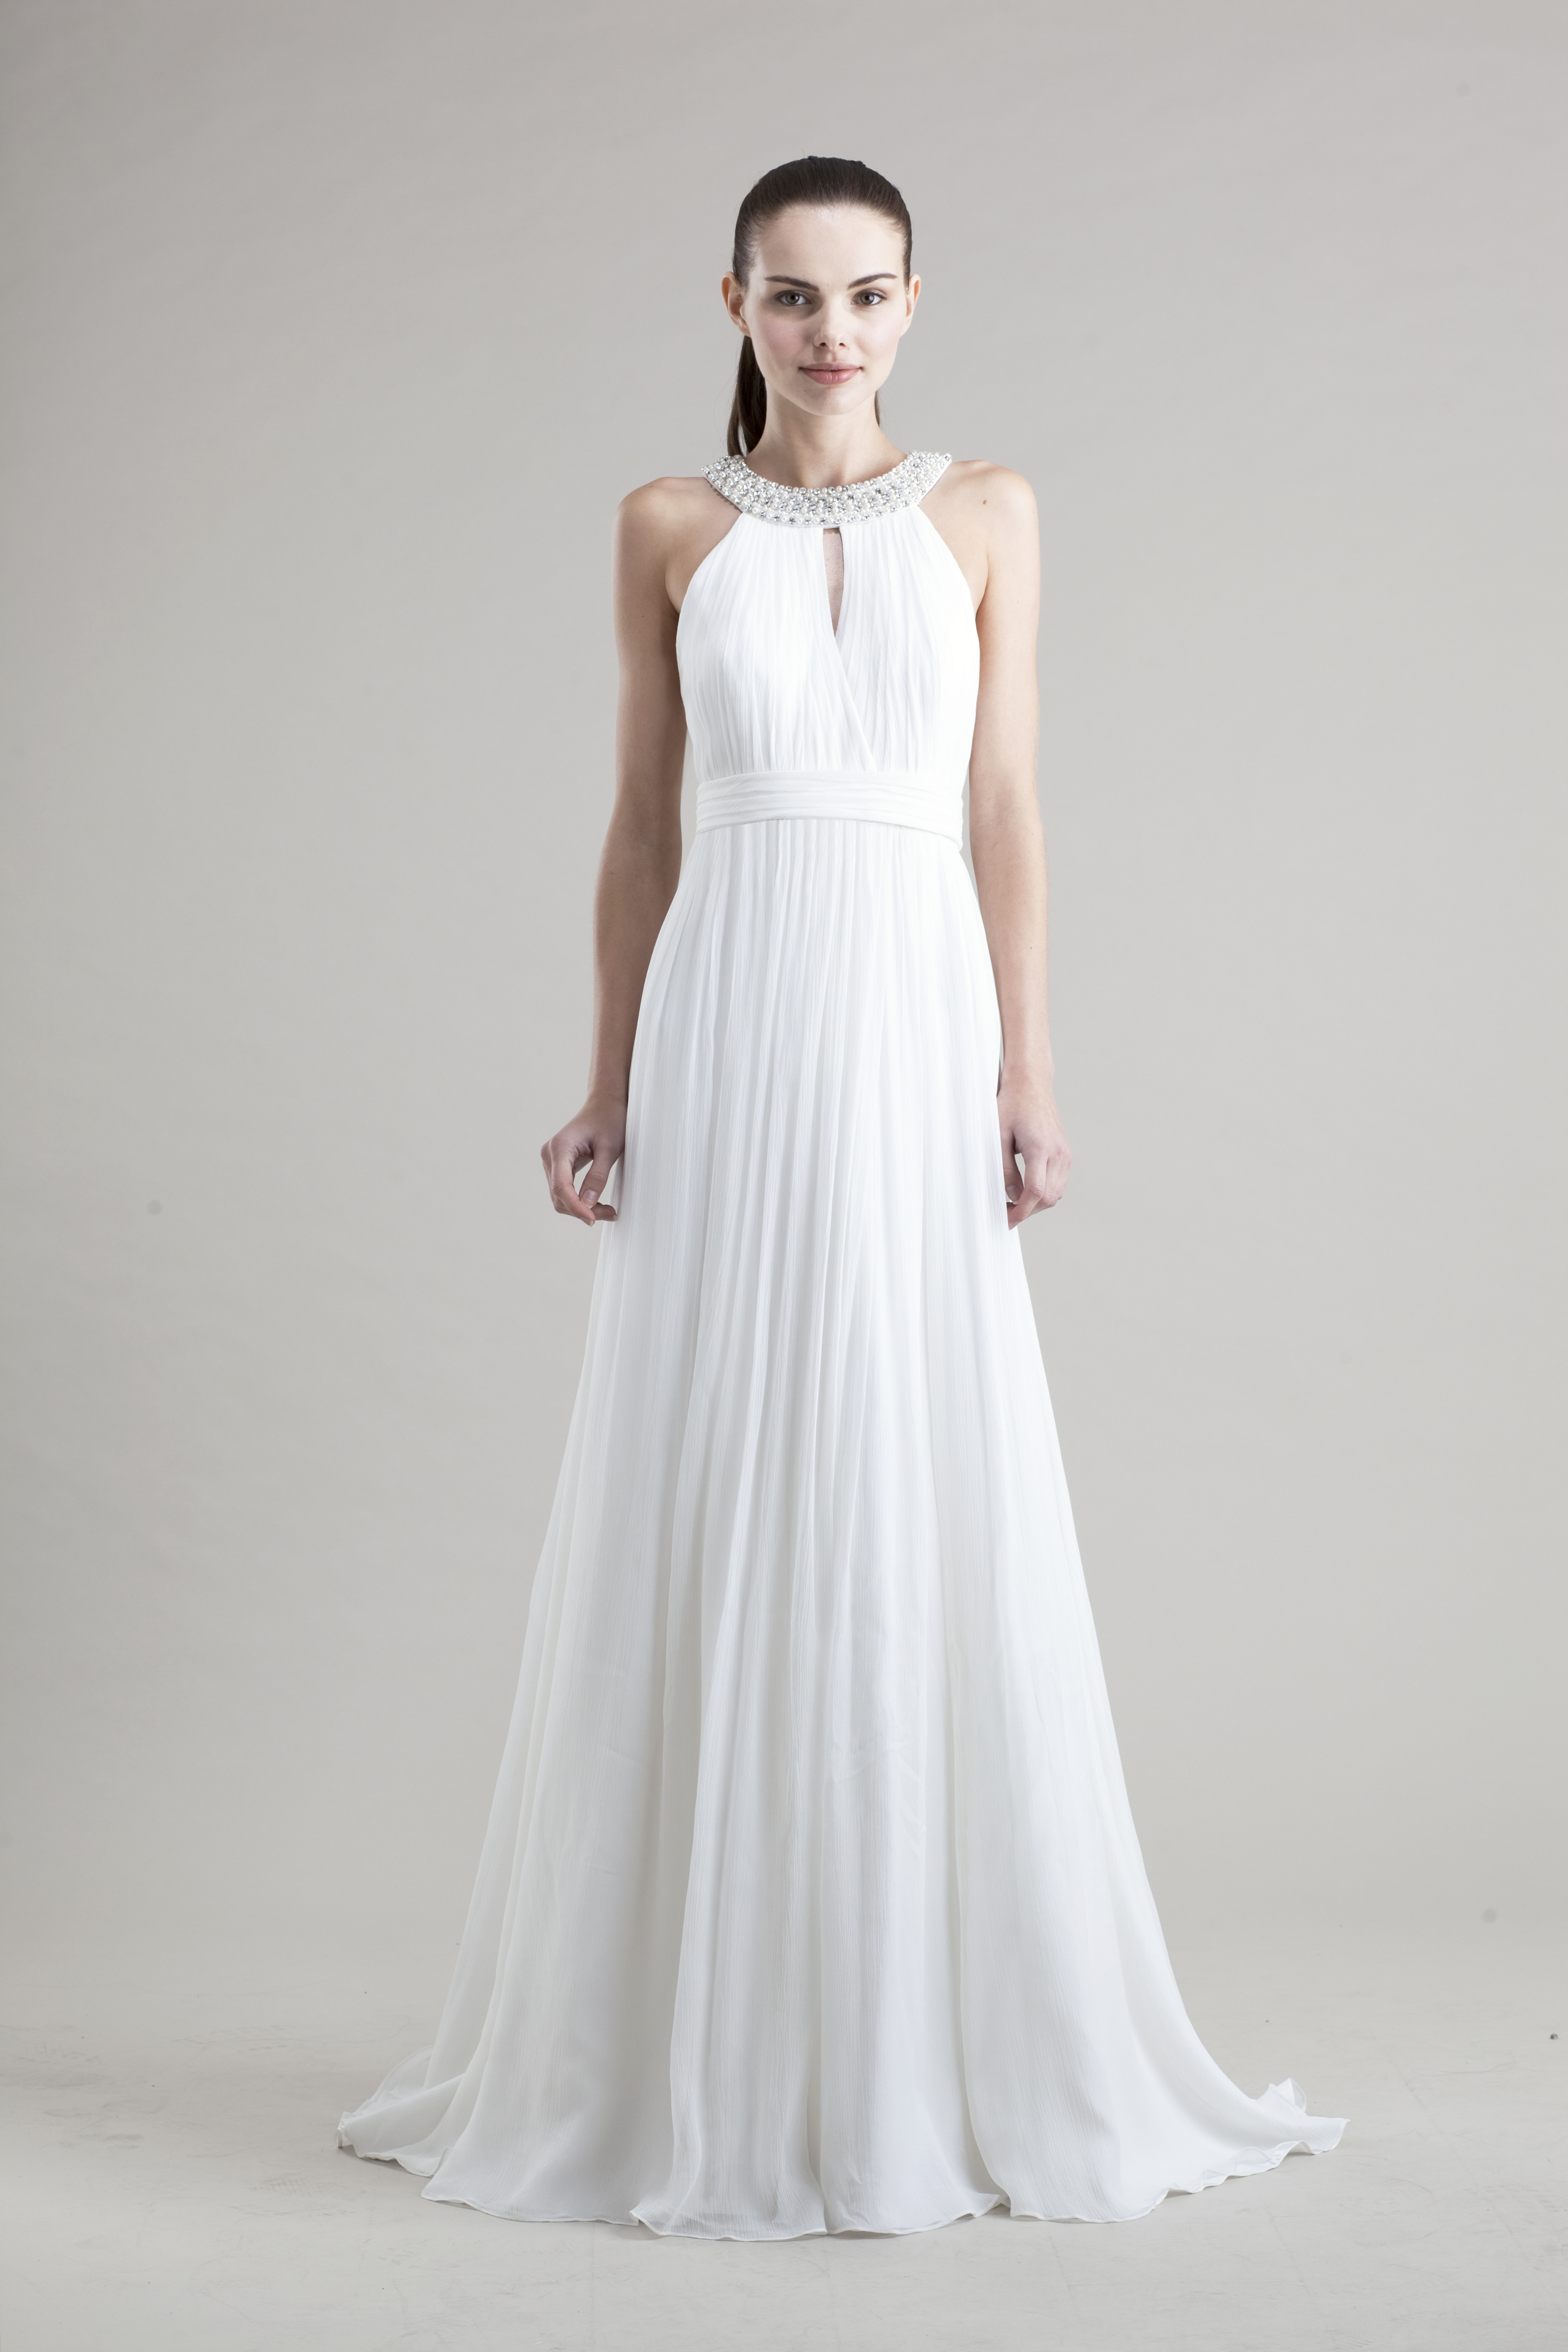 lang tr summer wedding dresses The Best Fabrics For Summer Wedding Dresses You and your wedding dress should be able to